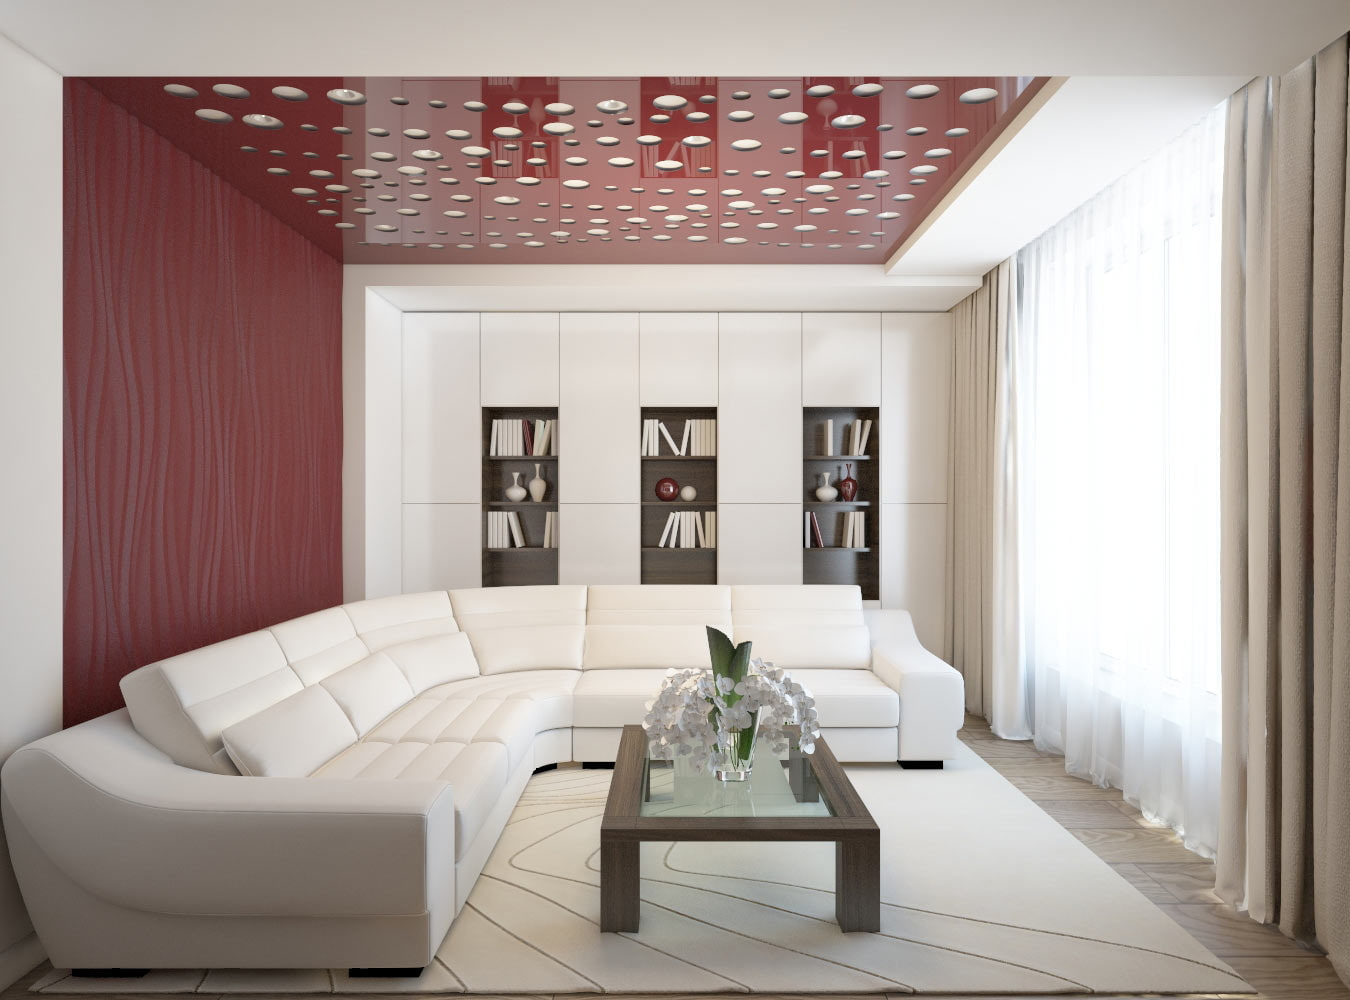 Red wall and ceiling design to revive white idyll of the living room with huge sofa